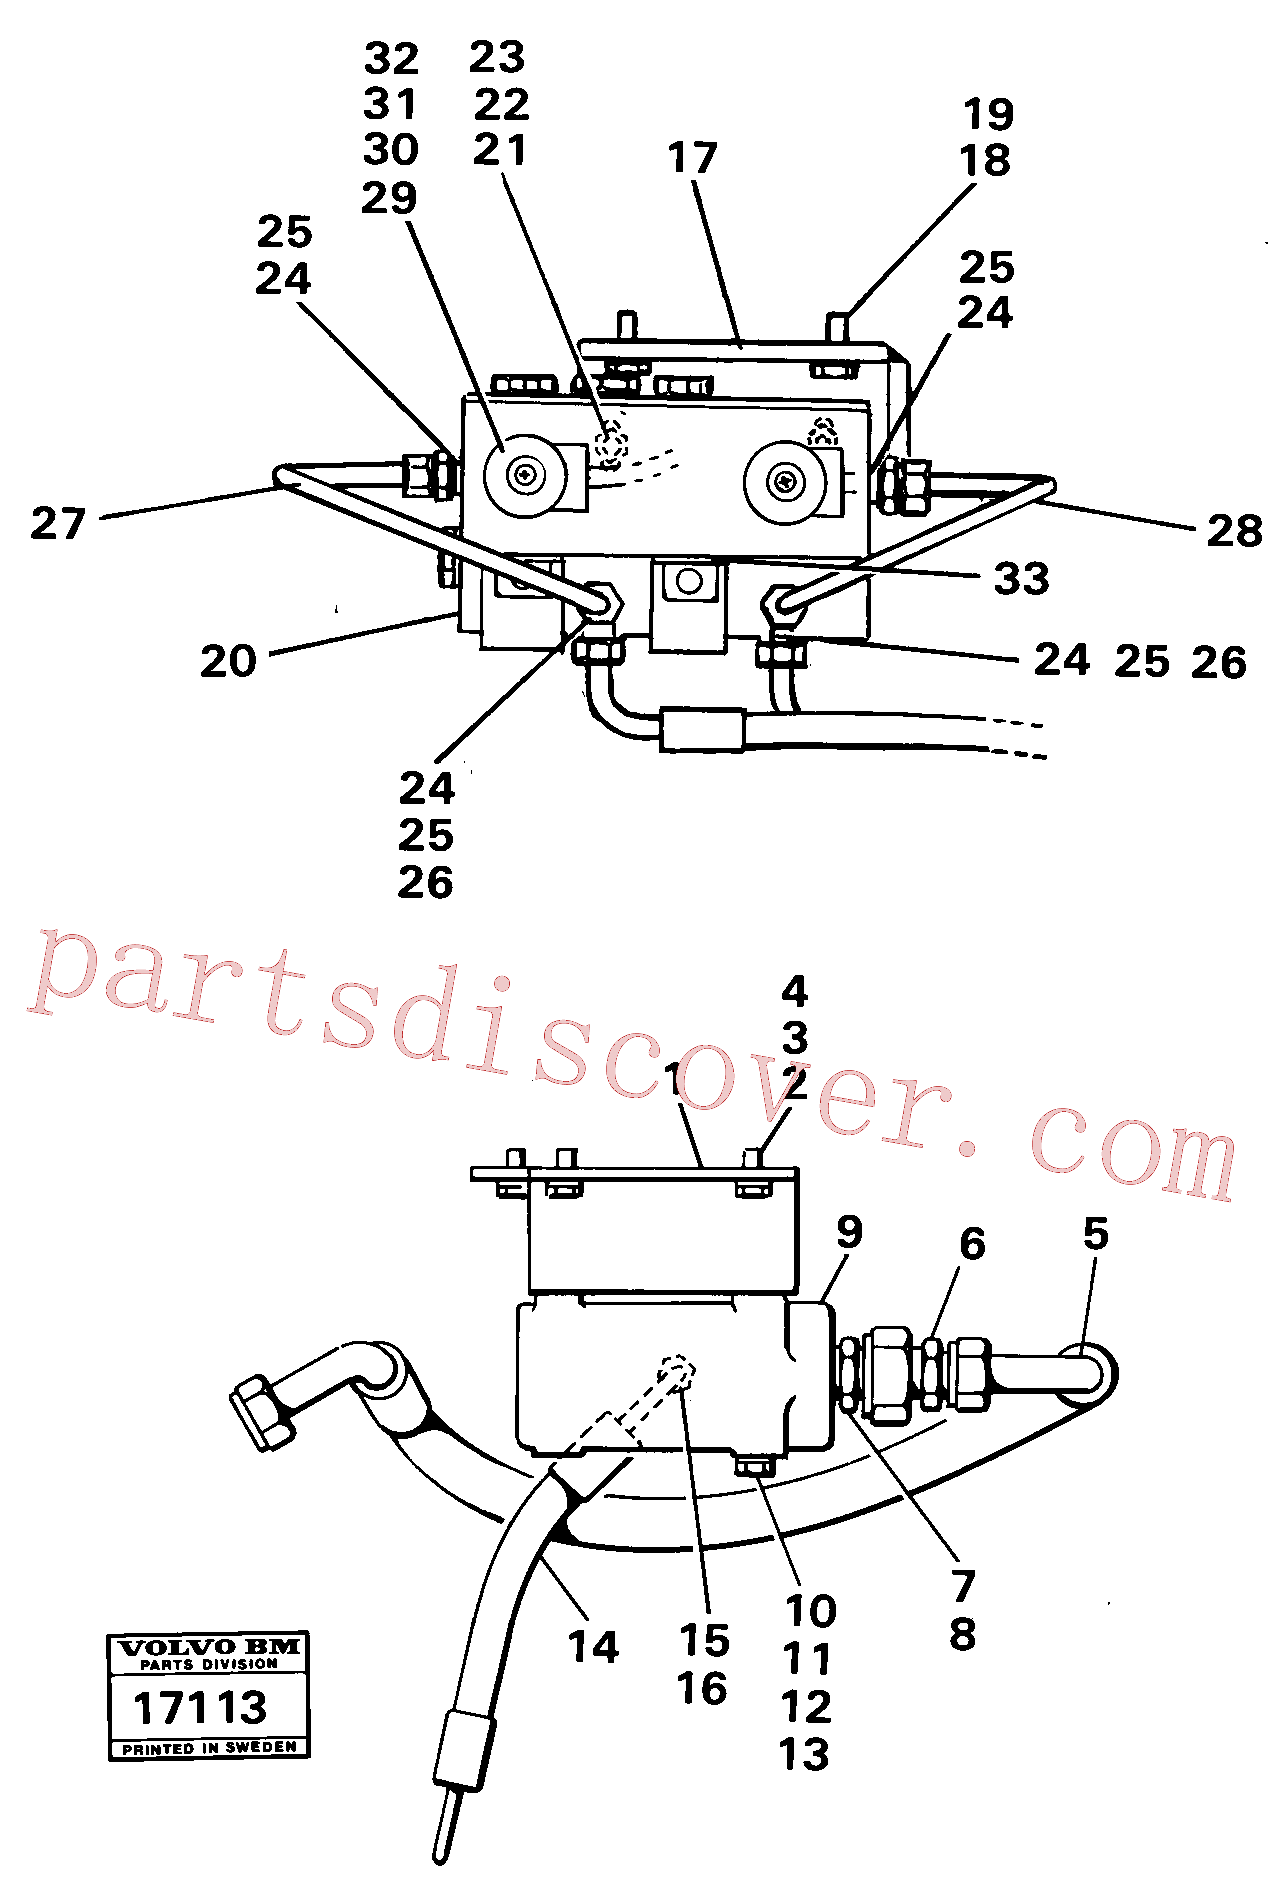 VOE13963958 for Volvo Valves with connections 99393 Tillv.nr 2224-(17113 assembly)